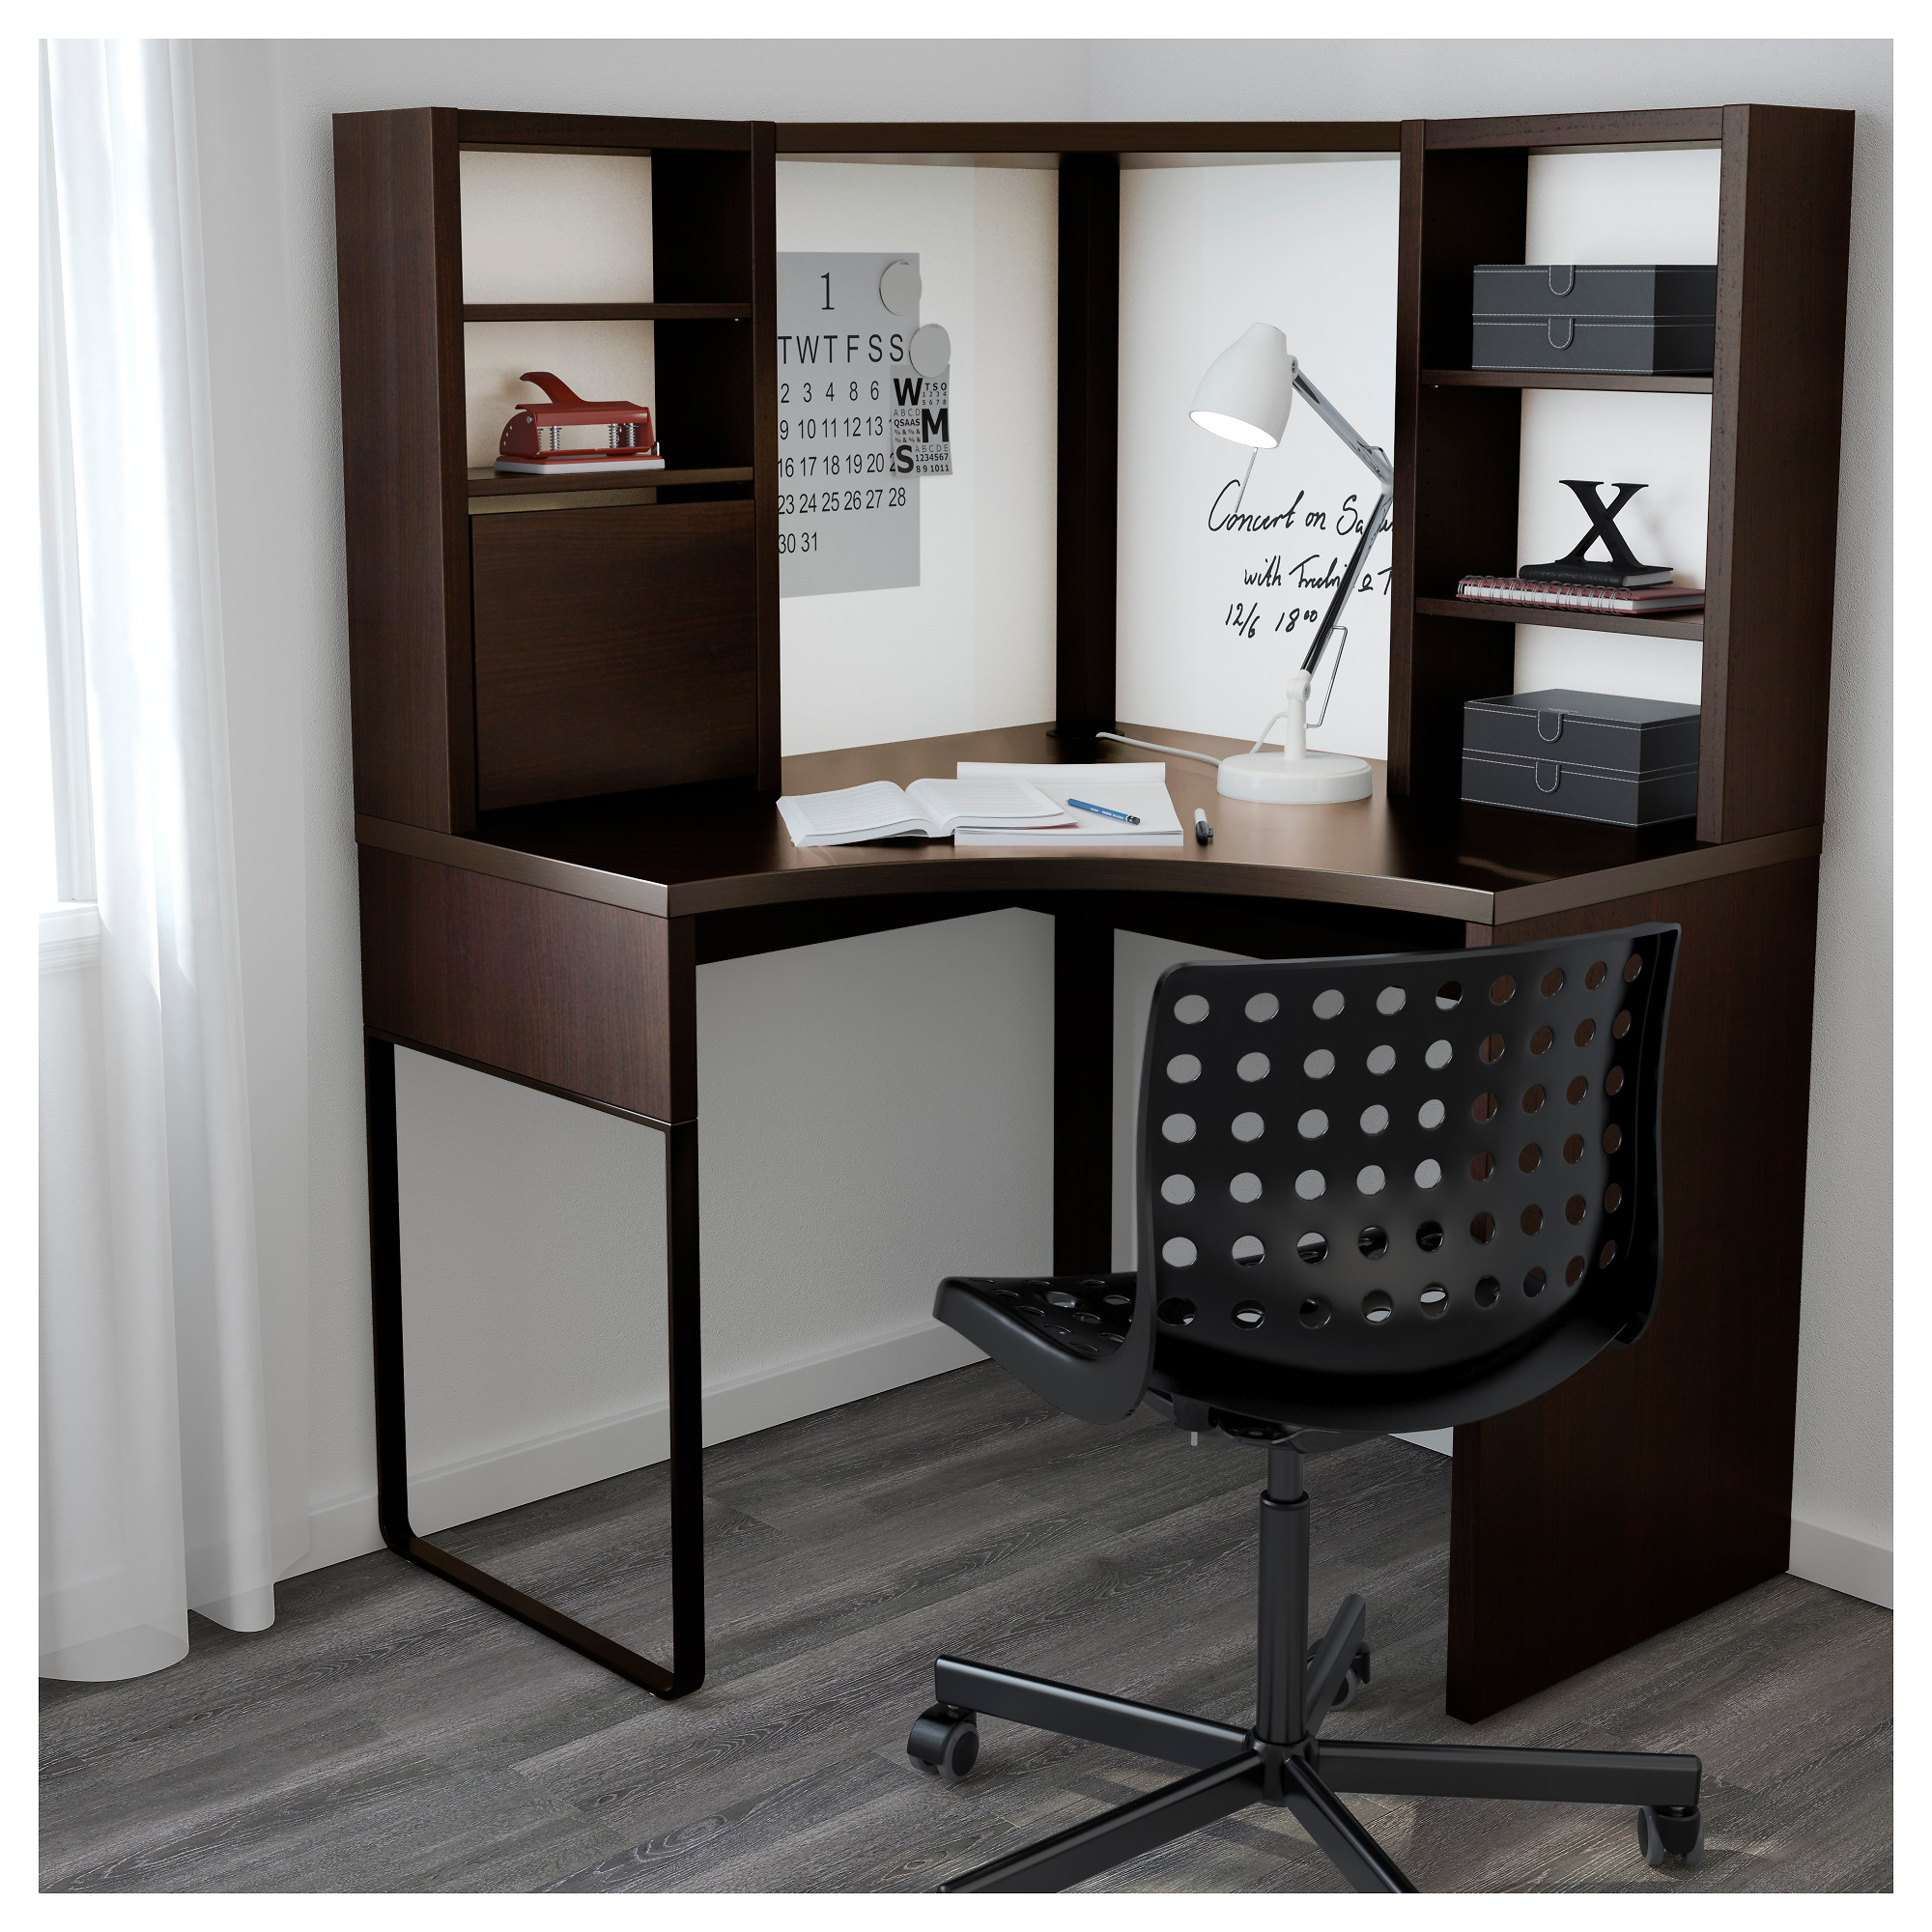 word 39office desks workstations39and. Word 39office Desks Workstations39and A